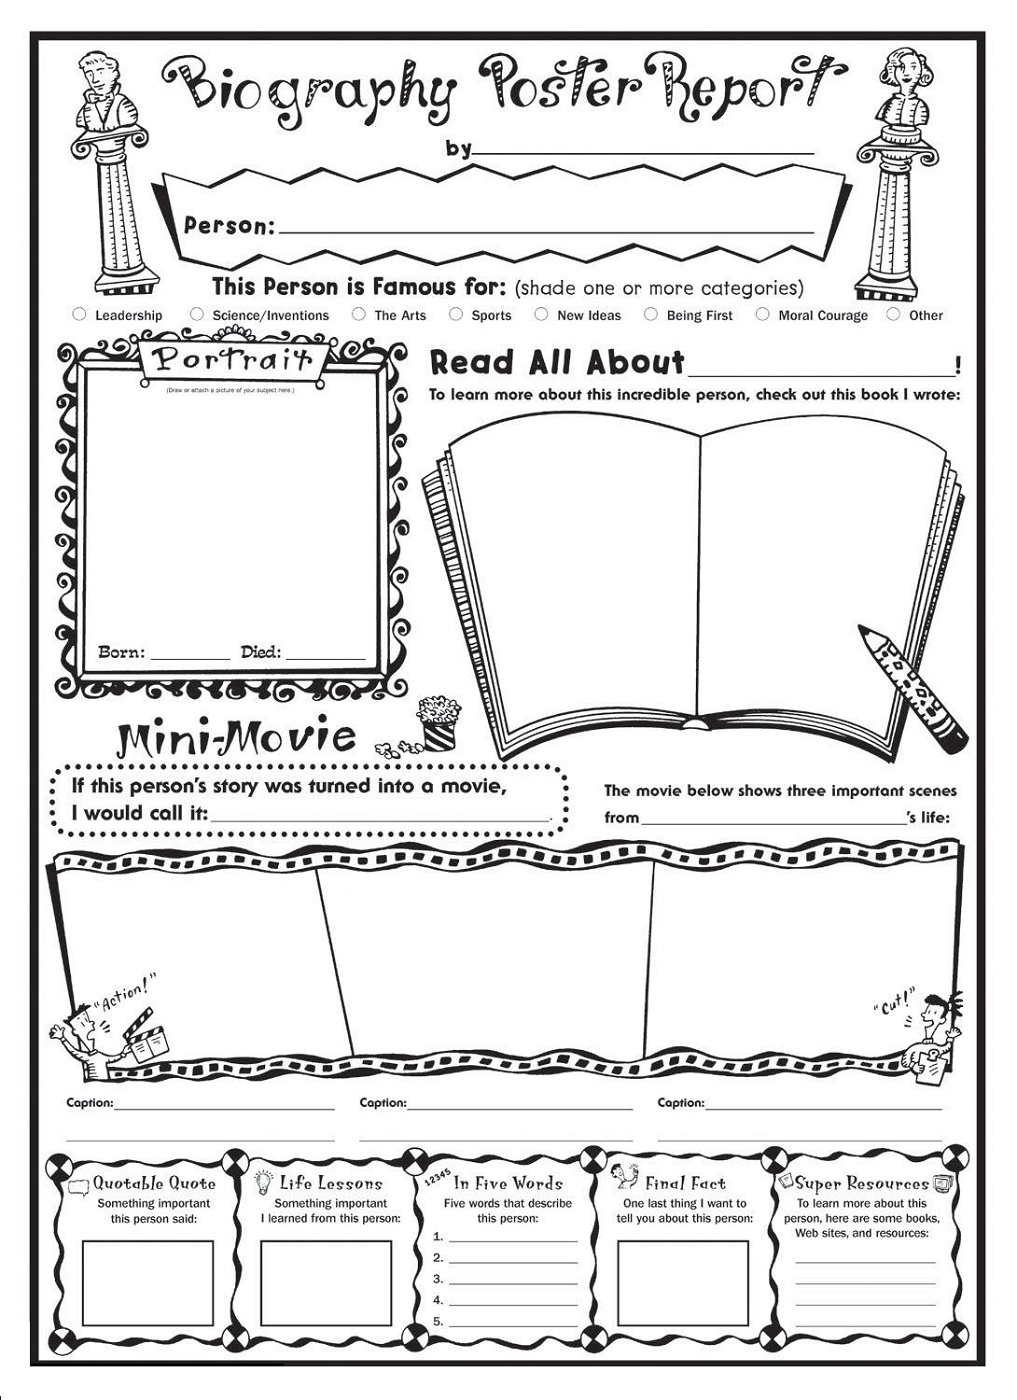 biography free printable children's book template